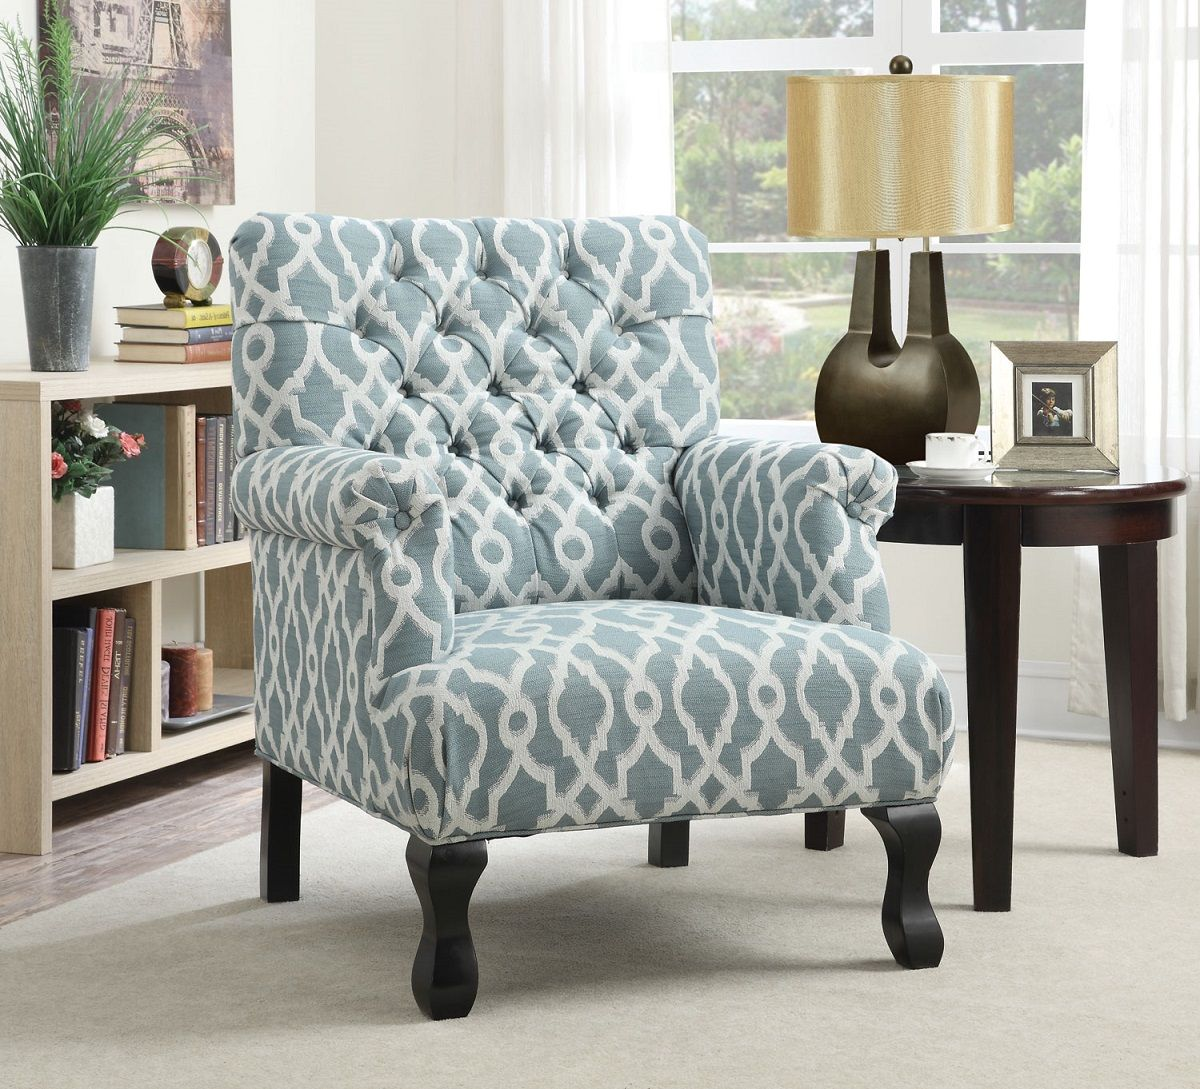 Best Blue Accent Chair With White Print Is A Classic Design 400 x 300